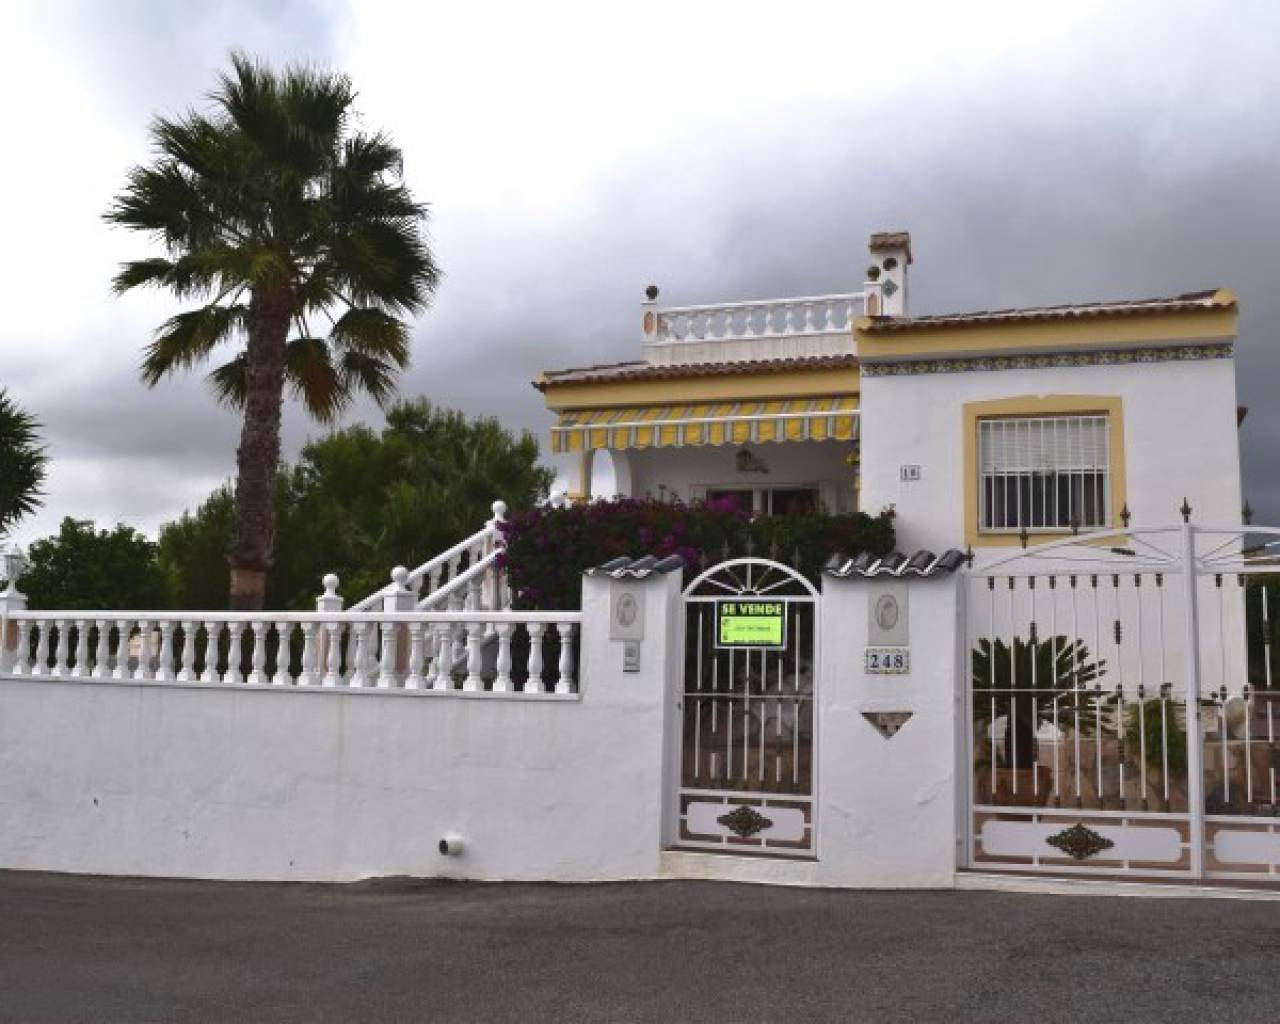 Sale - Detached Villa - Alicante - Algorfa